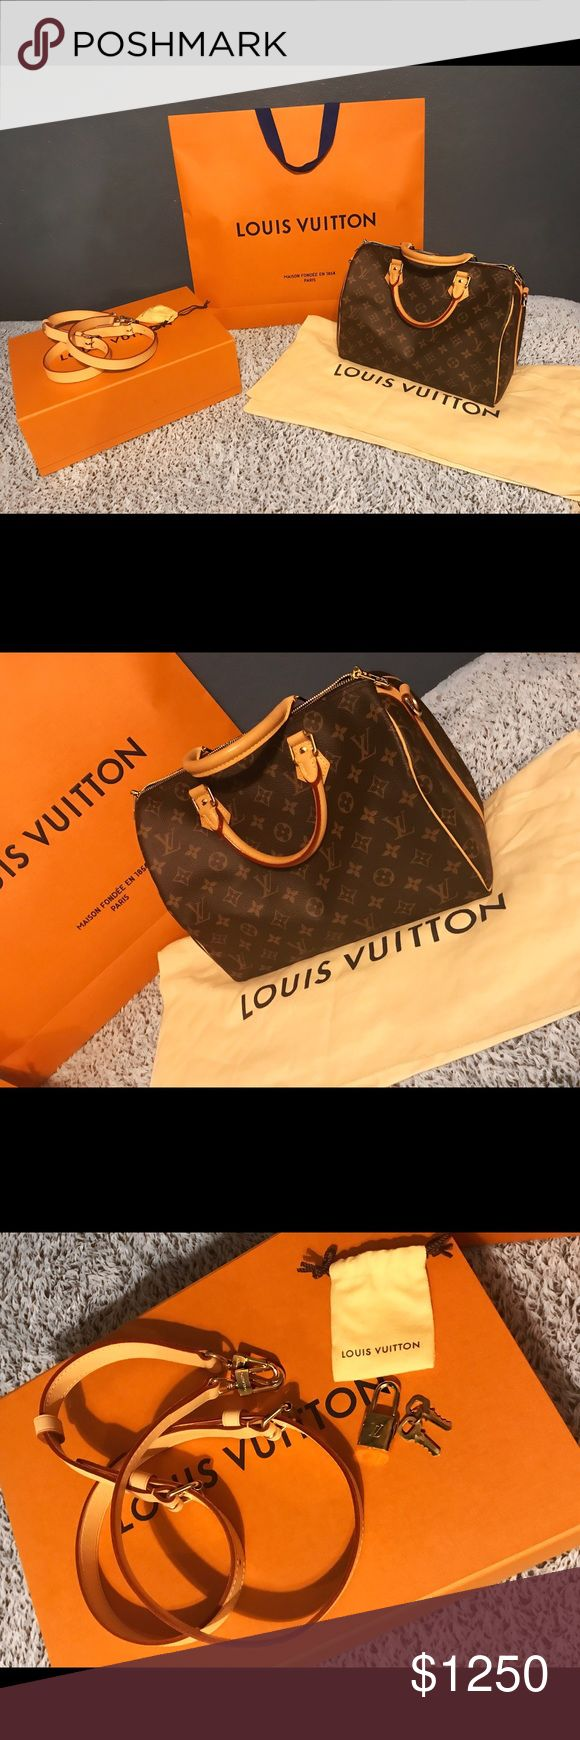 LOUIS VUITTON SPEEDY BANDOULIERE 30 lightly used, pretty much brand new purchased about 2-3 months ago - comes with original LV store bag, box & dust bag as well as the included strap and lock + keys. 100% authentic Louis Vuitton! (ORIG PRICE: $1,400.00) Louis Vuitton Bags